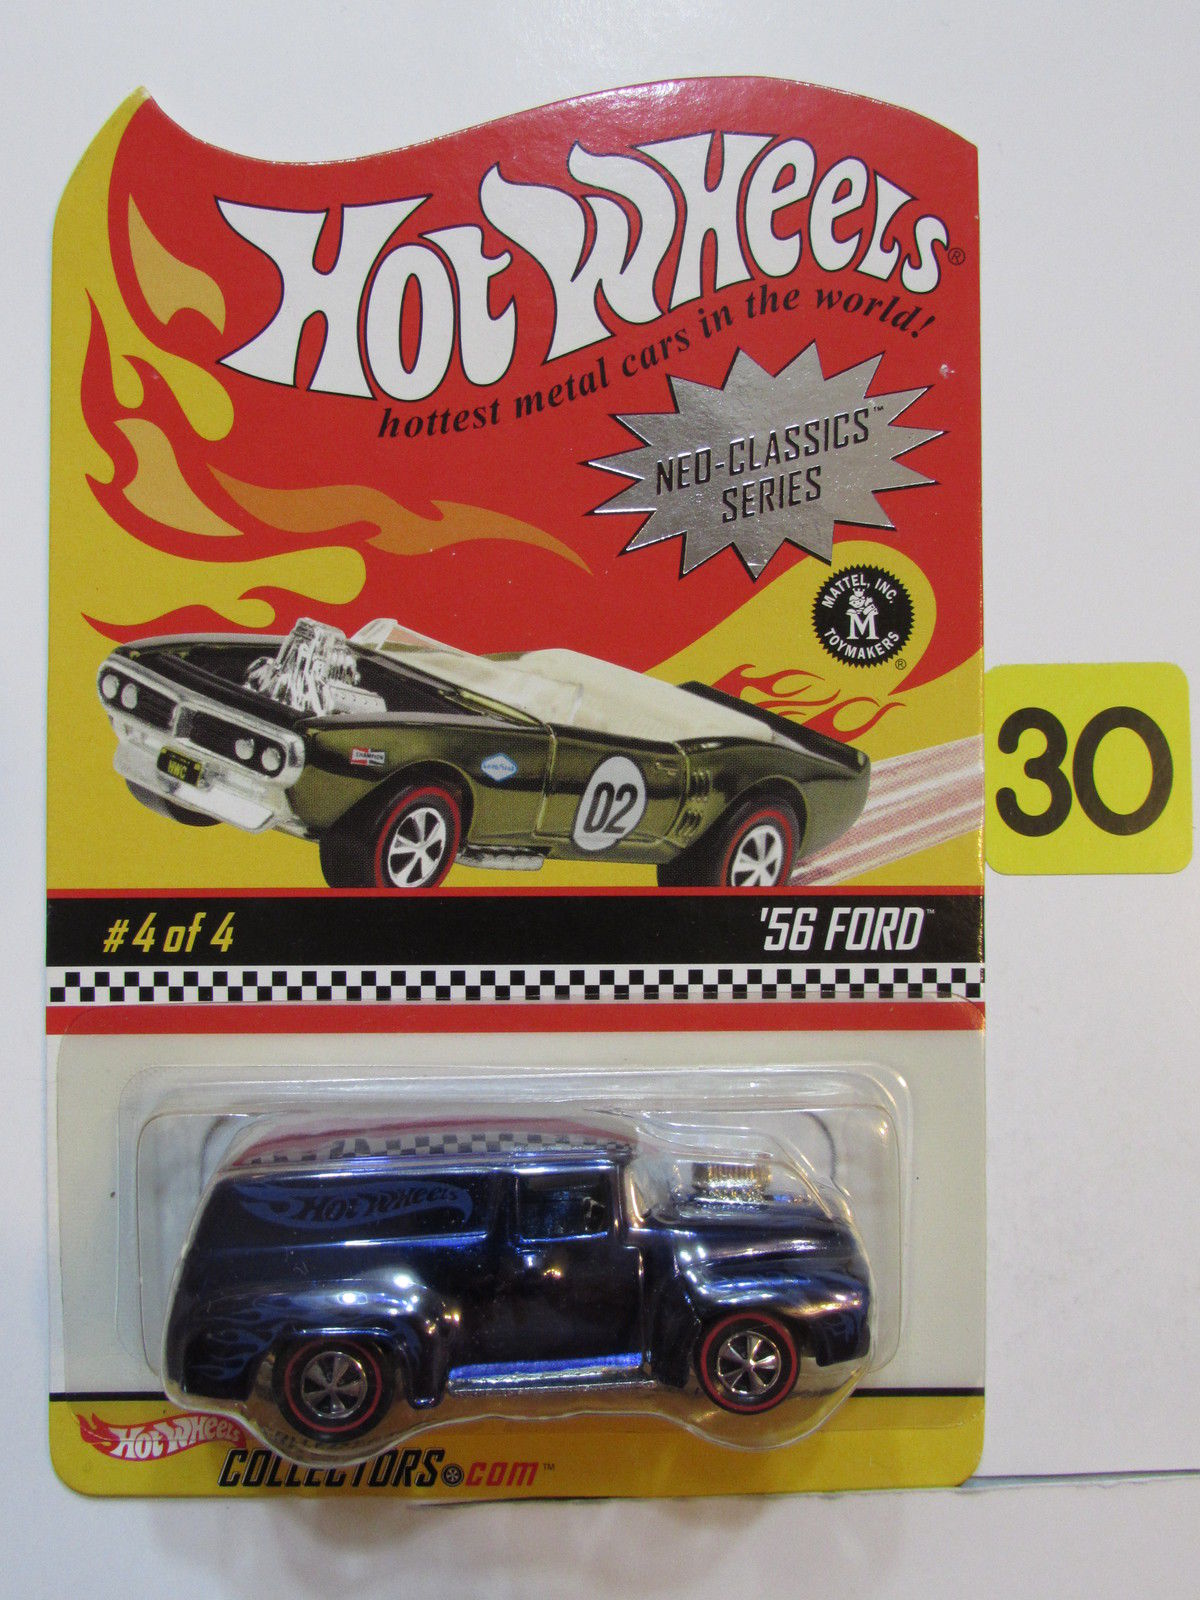 HOT WHEELS 2003 NEO-CLASSICS SERIES #4/4 - '56 FORD